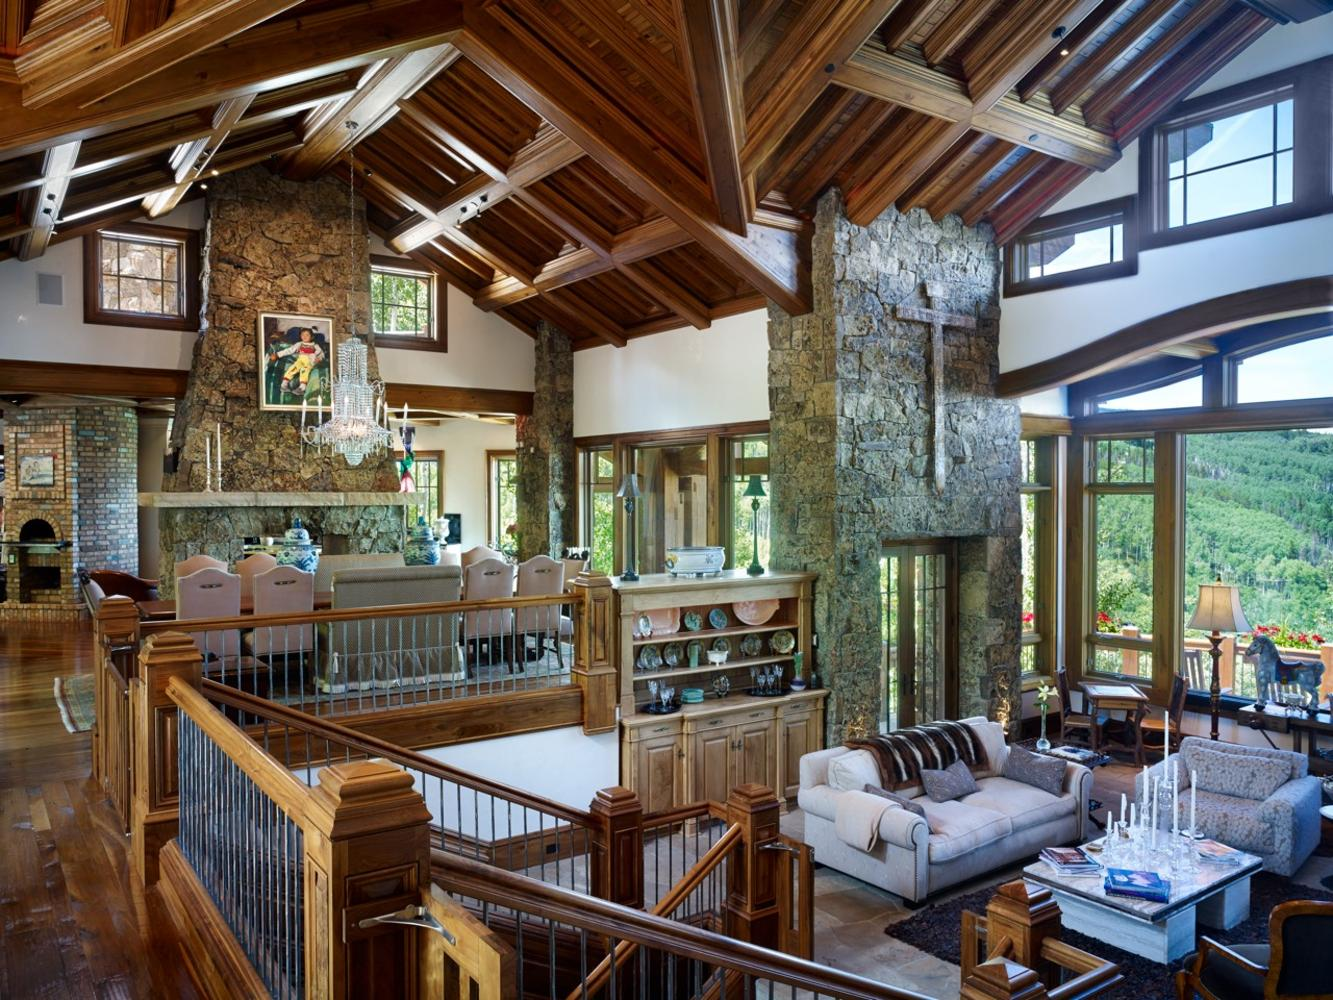 Additional photo for property listing at Unrivaled European Estate in Bachelor Gulch 2150 Daybreak Ridge Beaver Creek, Colorado 81620 United States